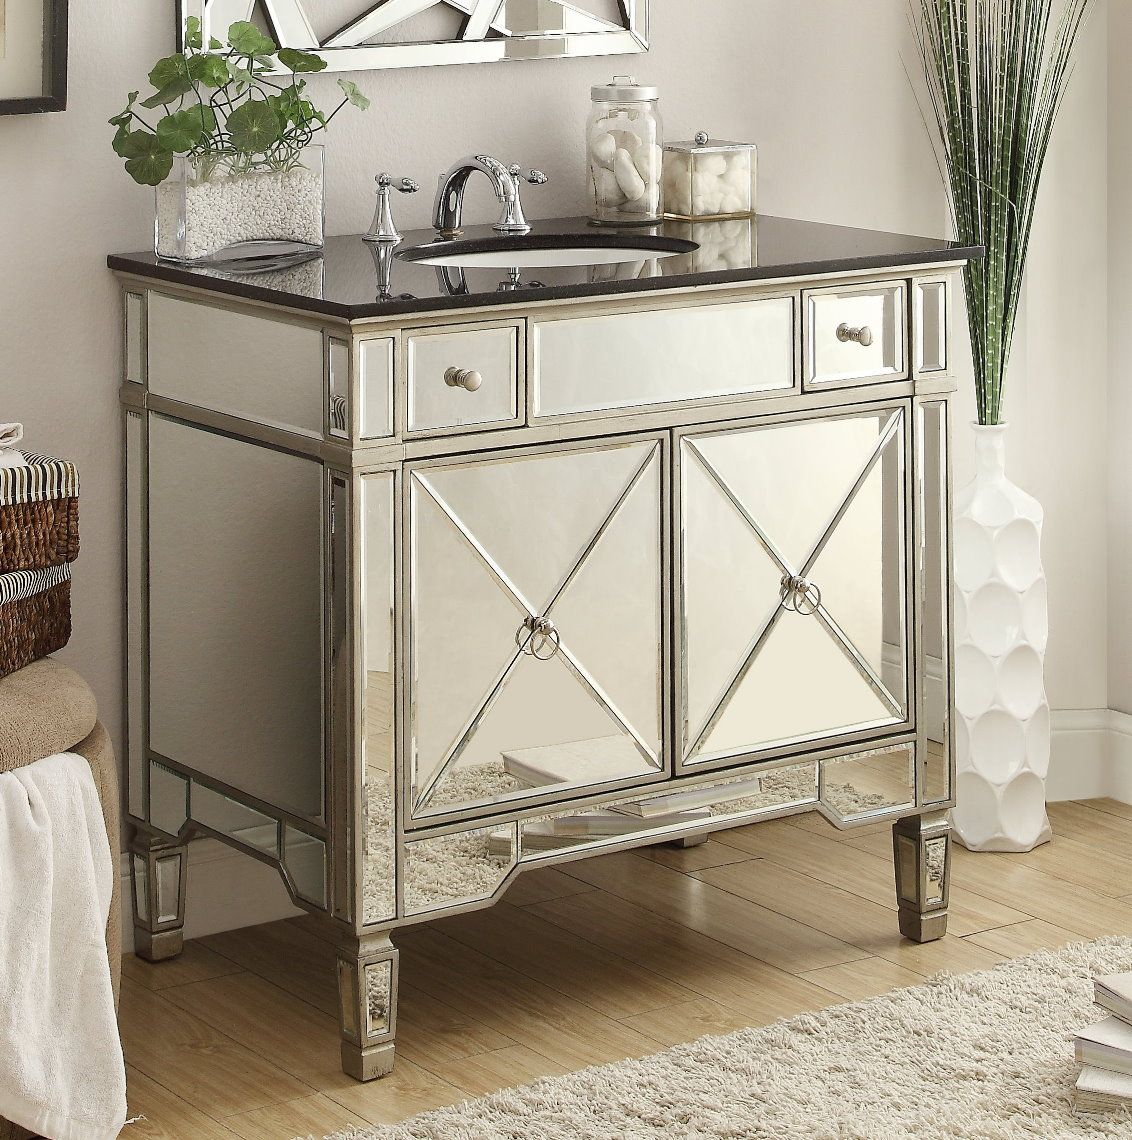 Photos On This Adelina inch Mirrored Silver Bathroom Vanity will add elegance and function to your bath